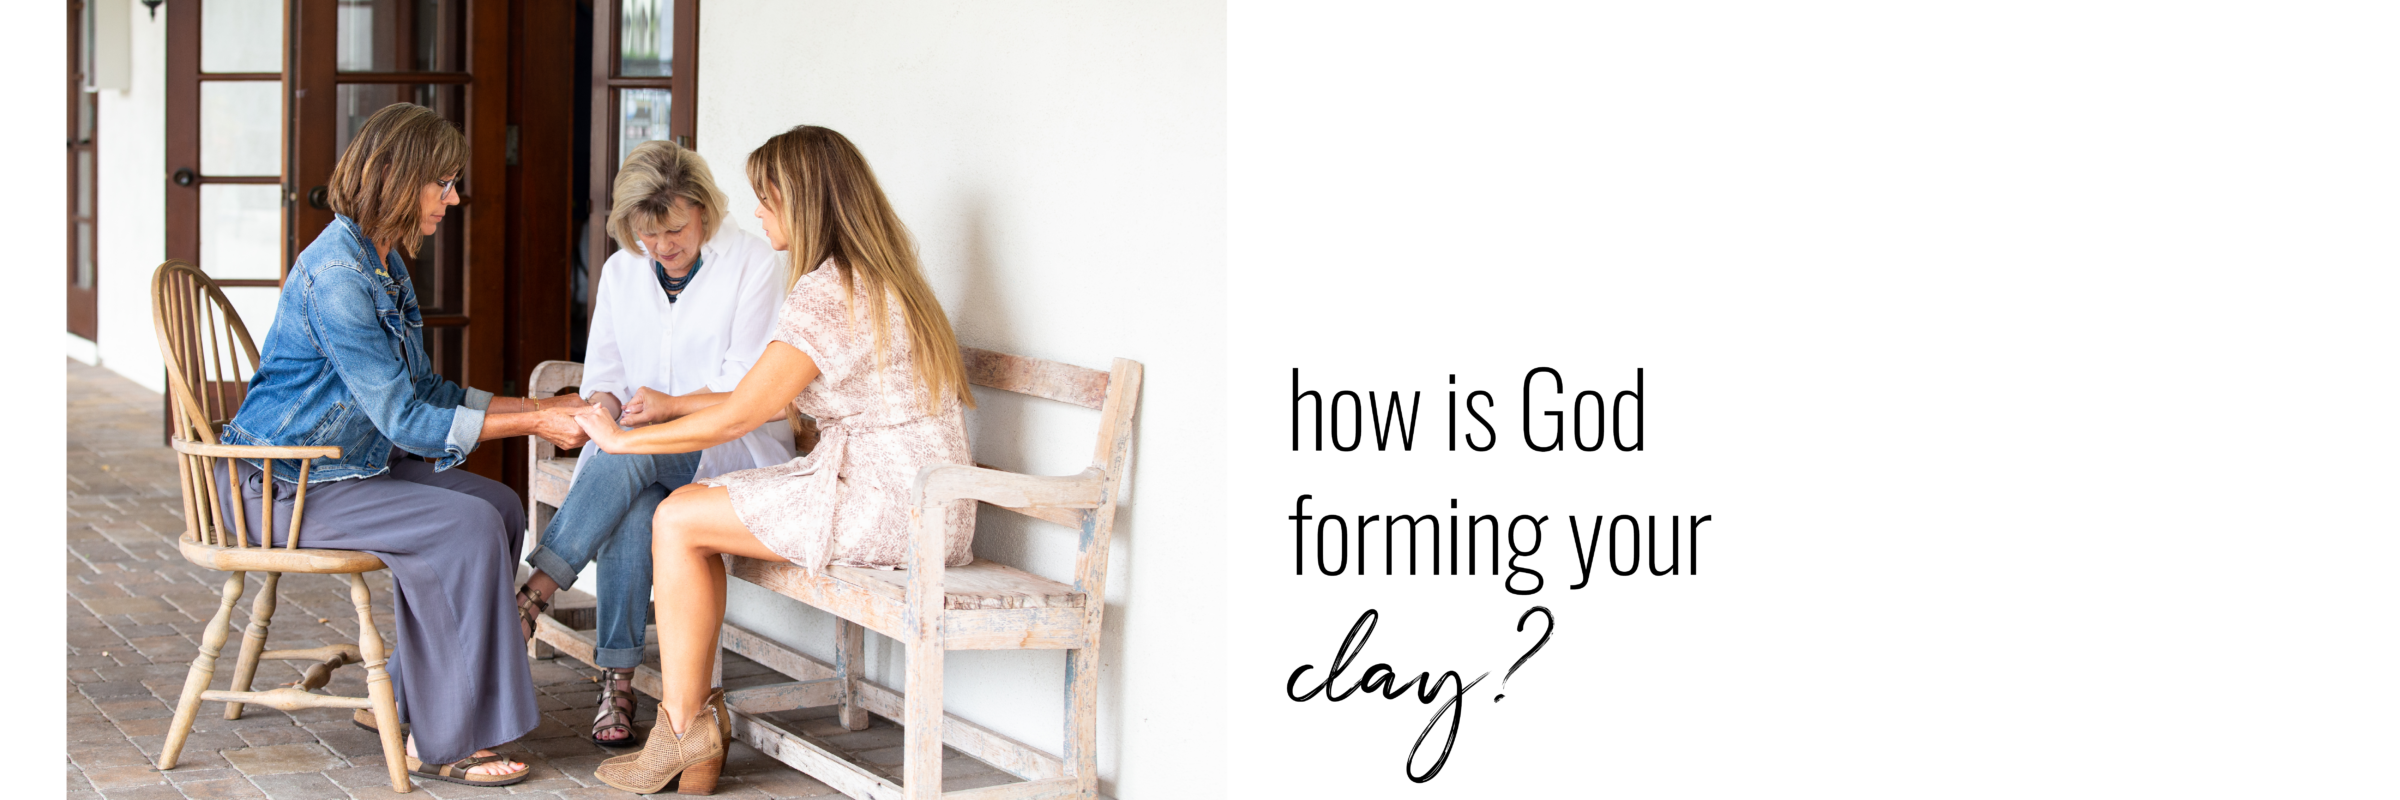 how is God forming your clay?